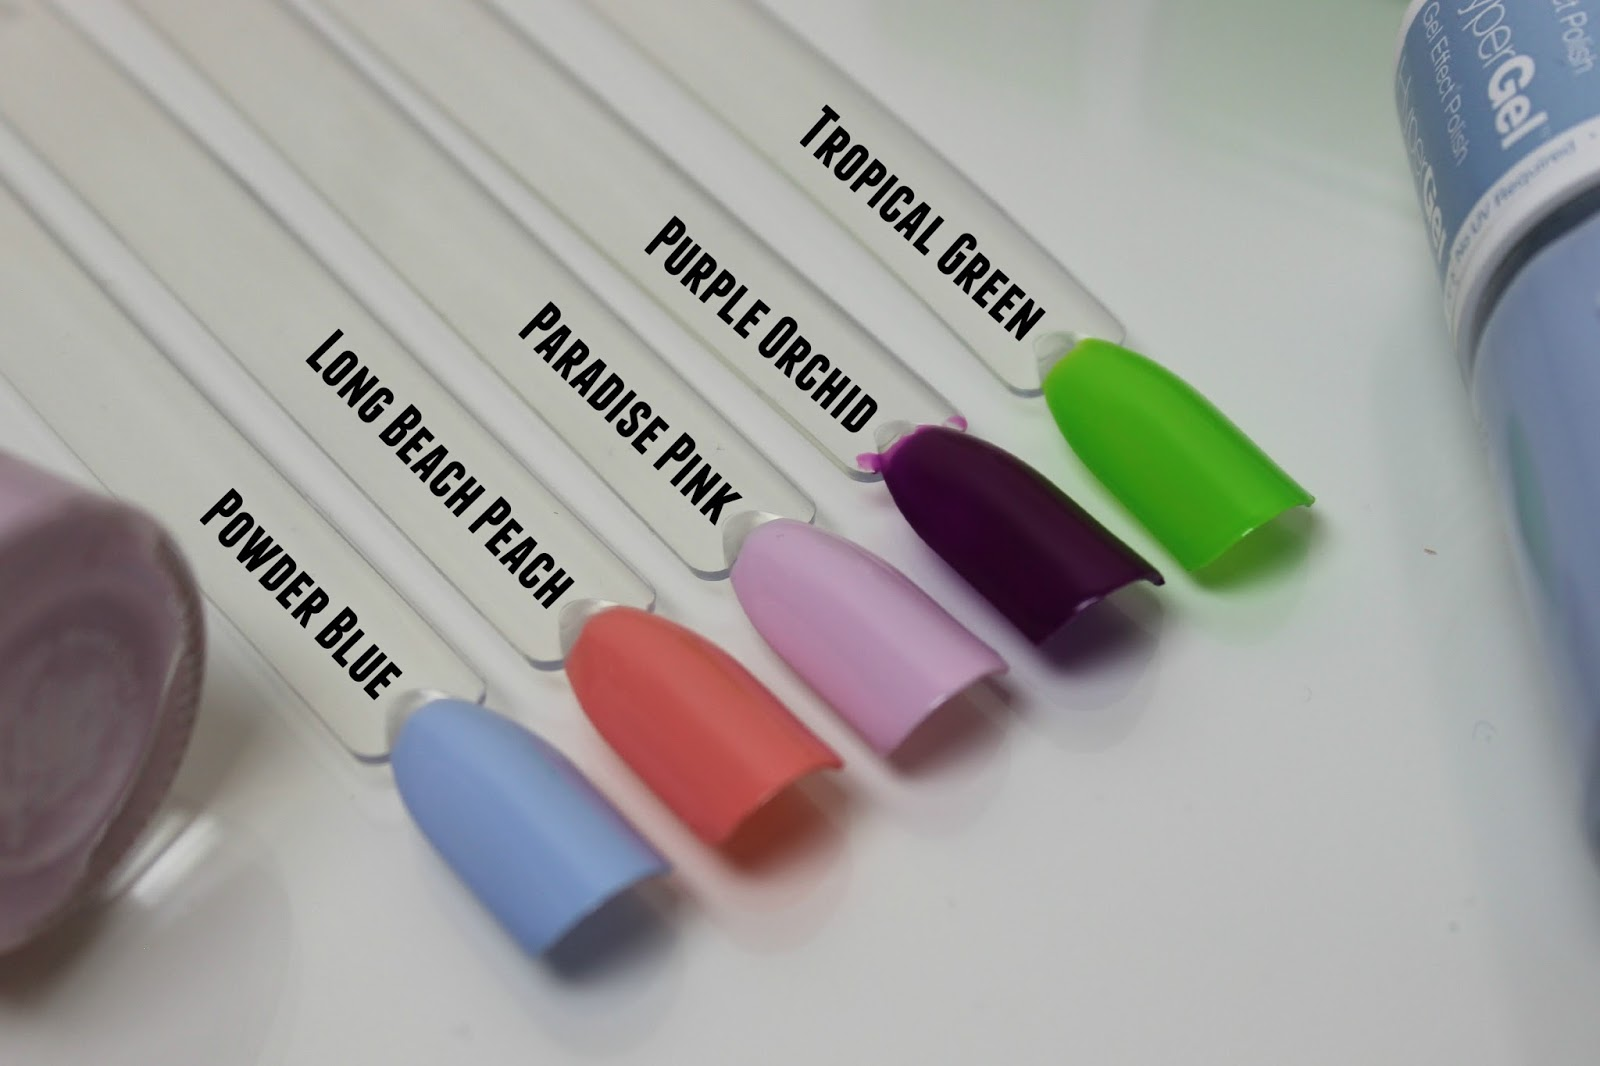 A picture of Models Own Hyper Gel Spring Shades